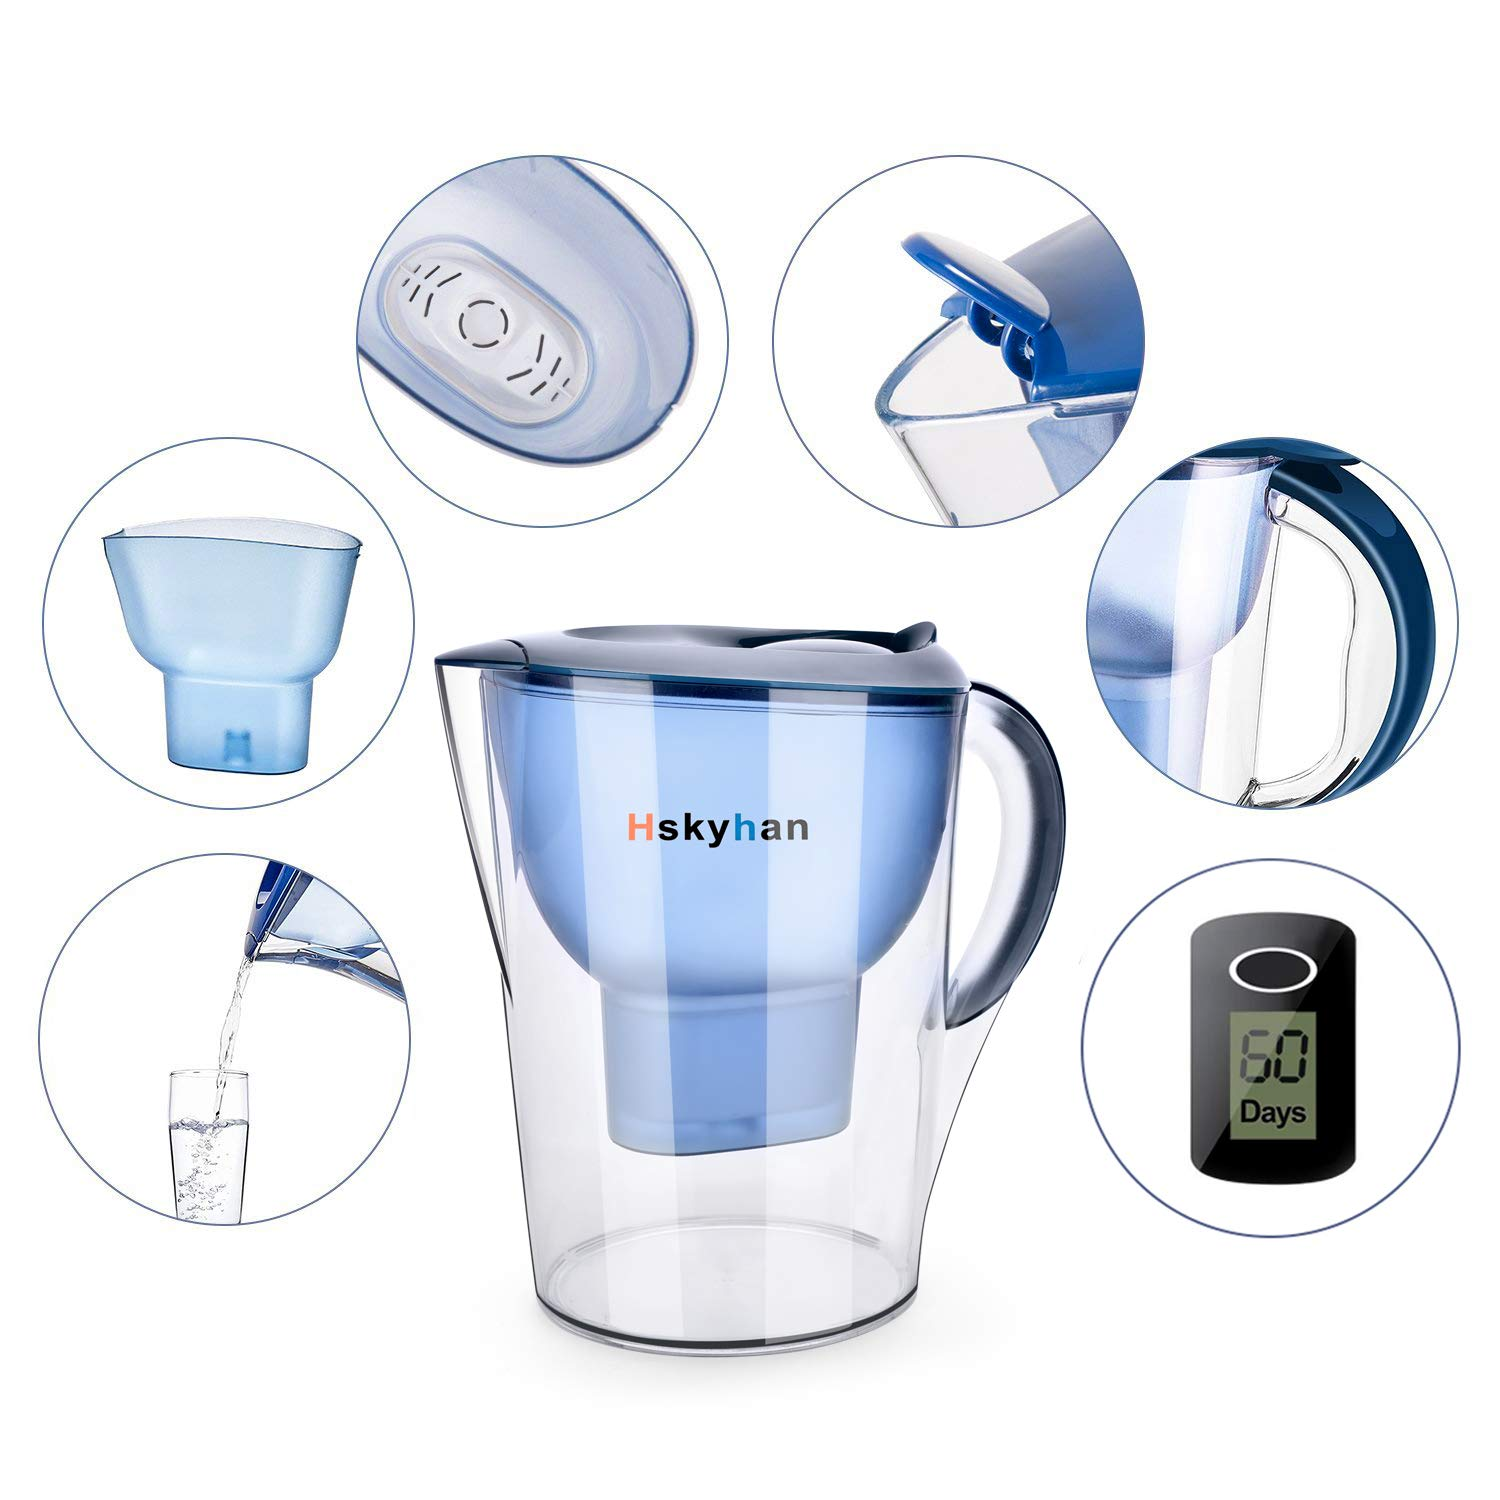 Hskyhan Alkaline Water Filter Pitcher - 3.5 Liters Improve PH, 2 Filters Included, 7 Stage Filteration System to Purify, Blue by Hskyhan (Image #2)